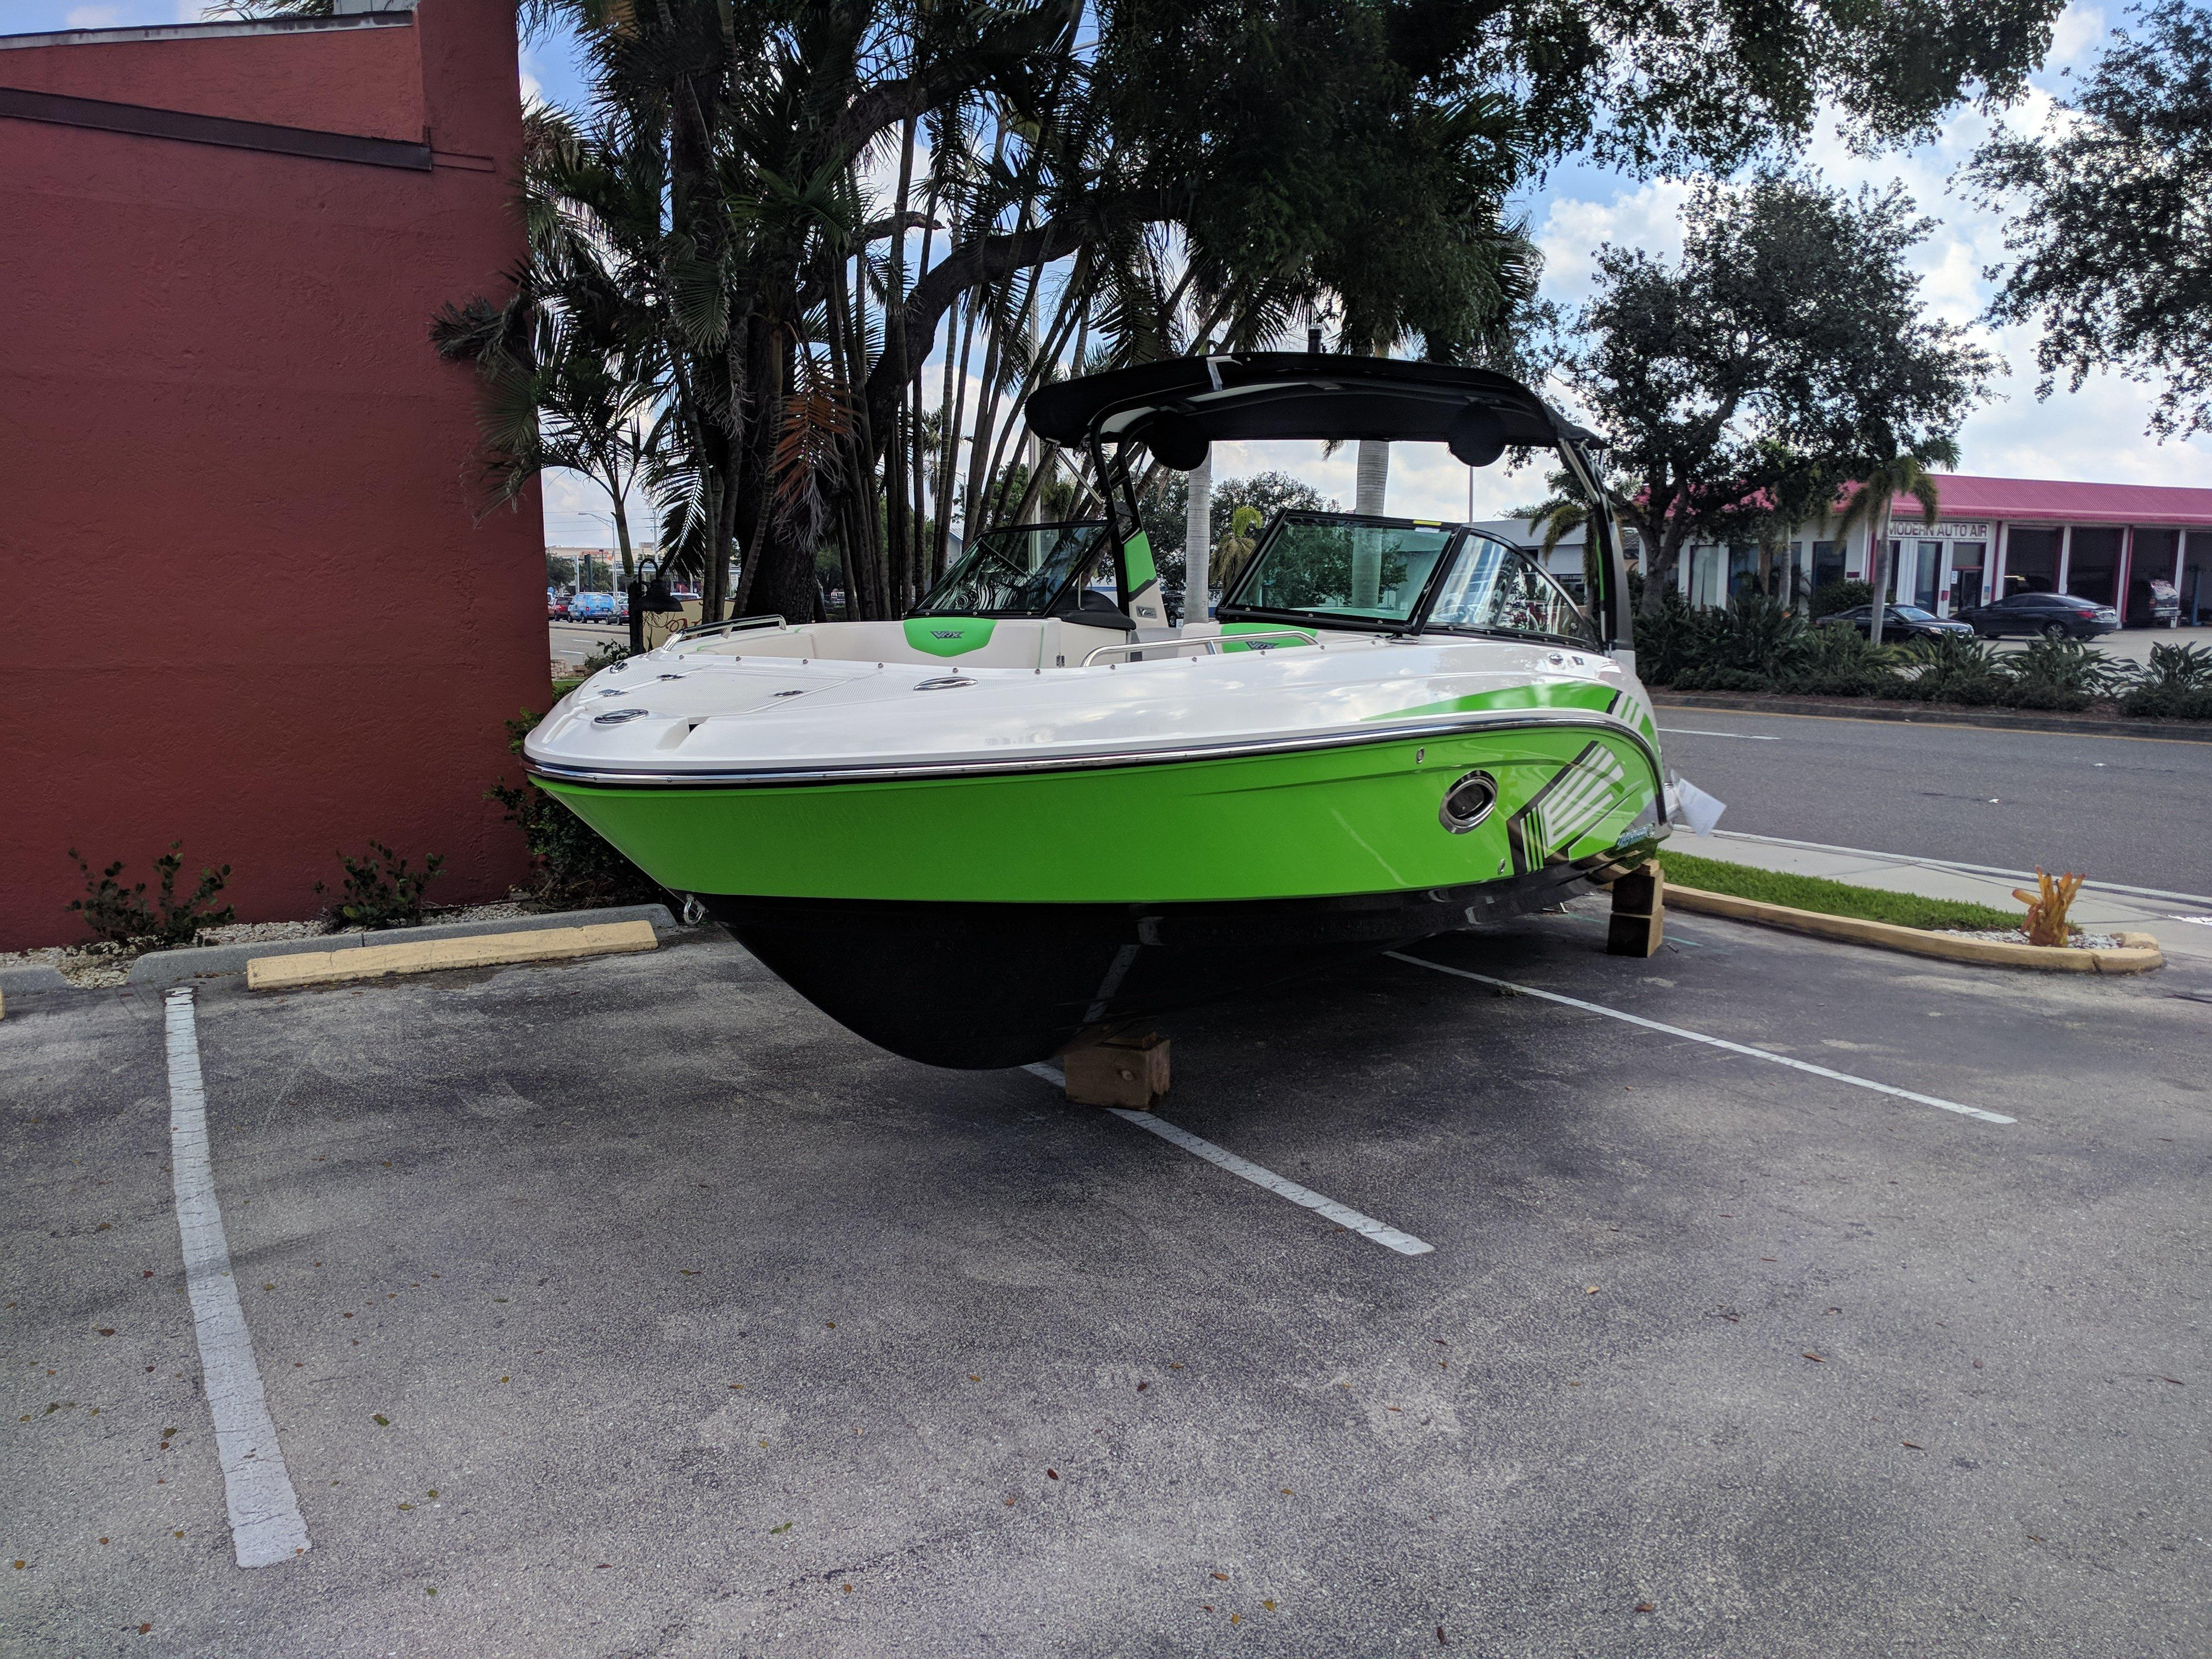 Fish tale boats naples naples florida fl for Fish tale boats